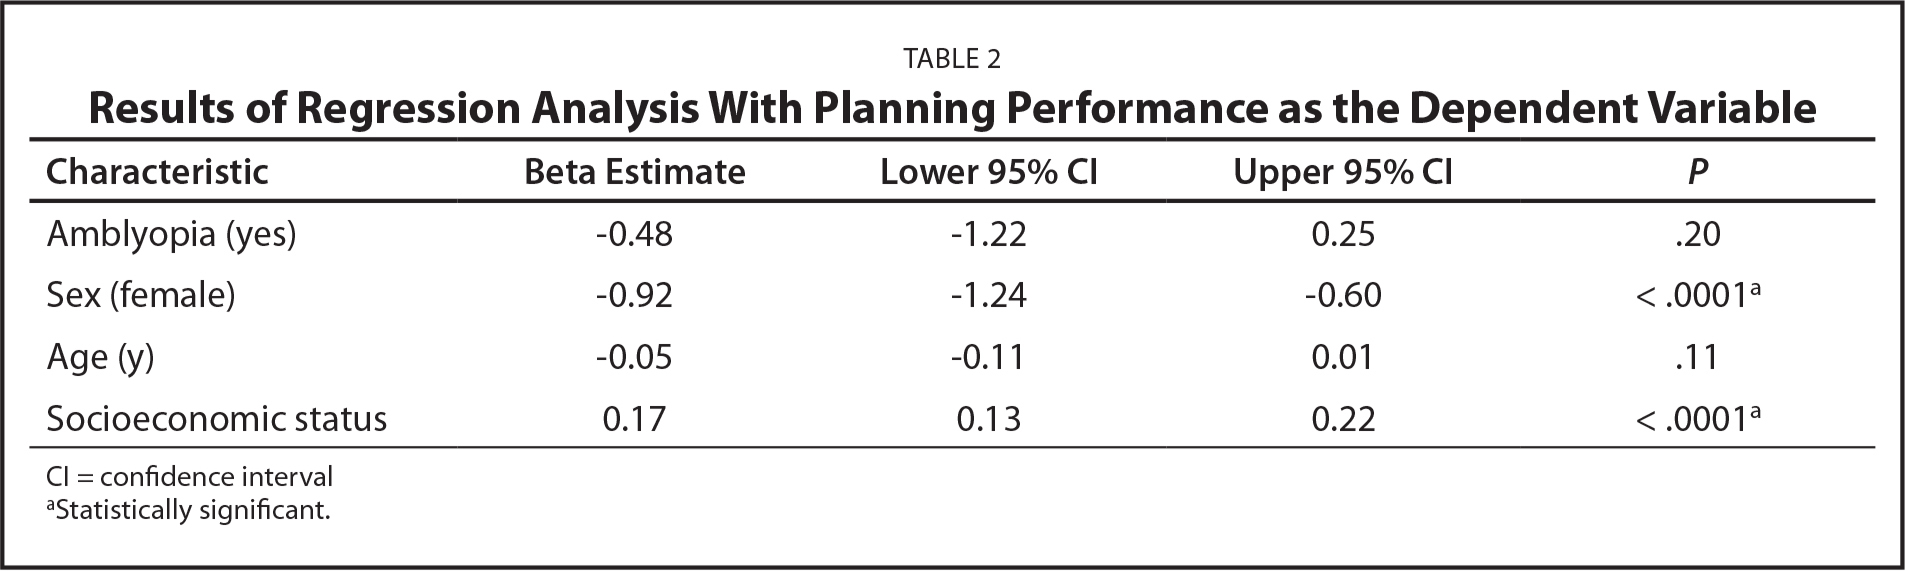 Results of Regression Analysis With Planning Performance as the Dependent Variable